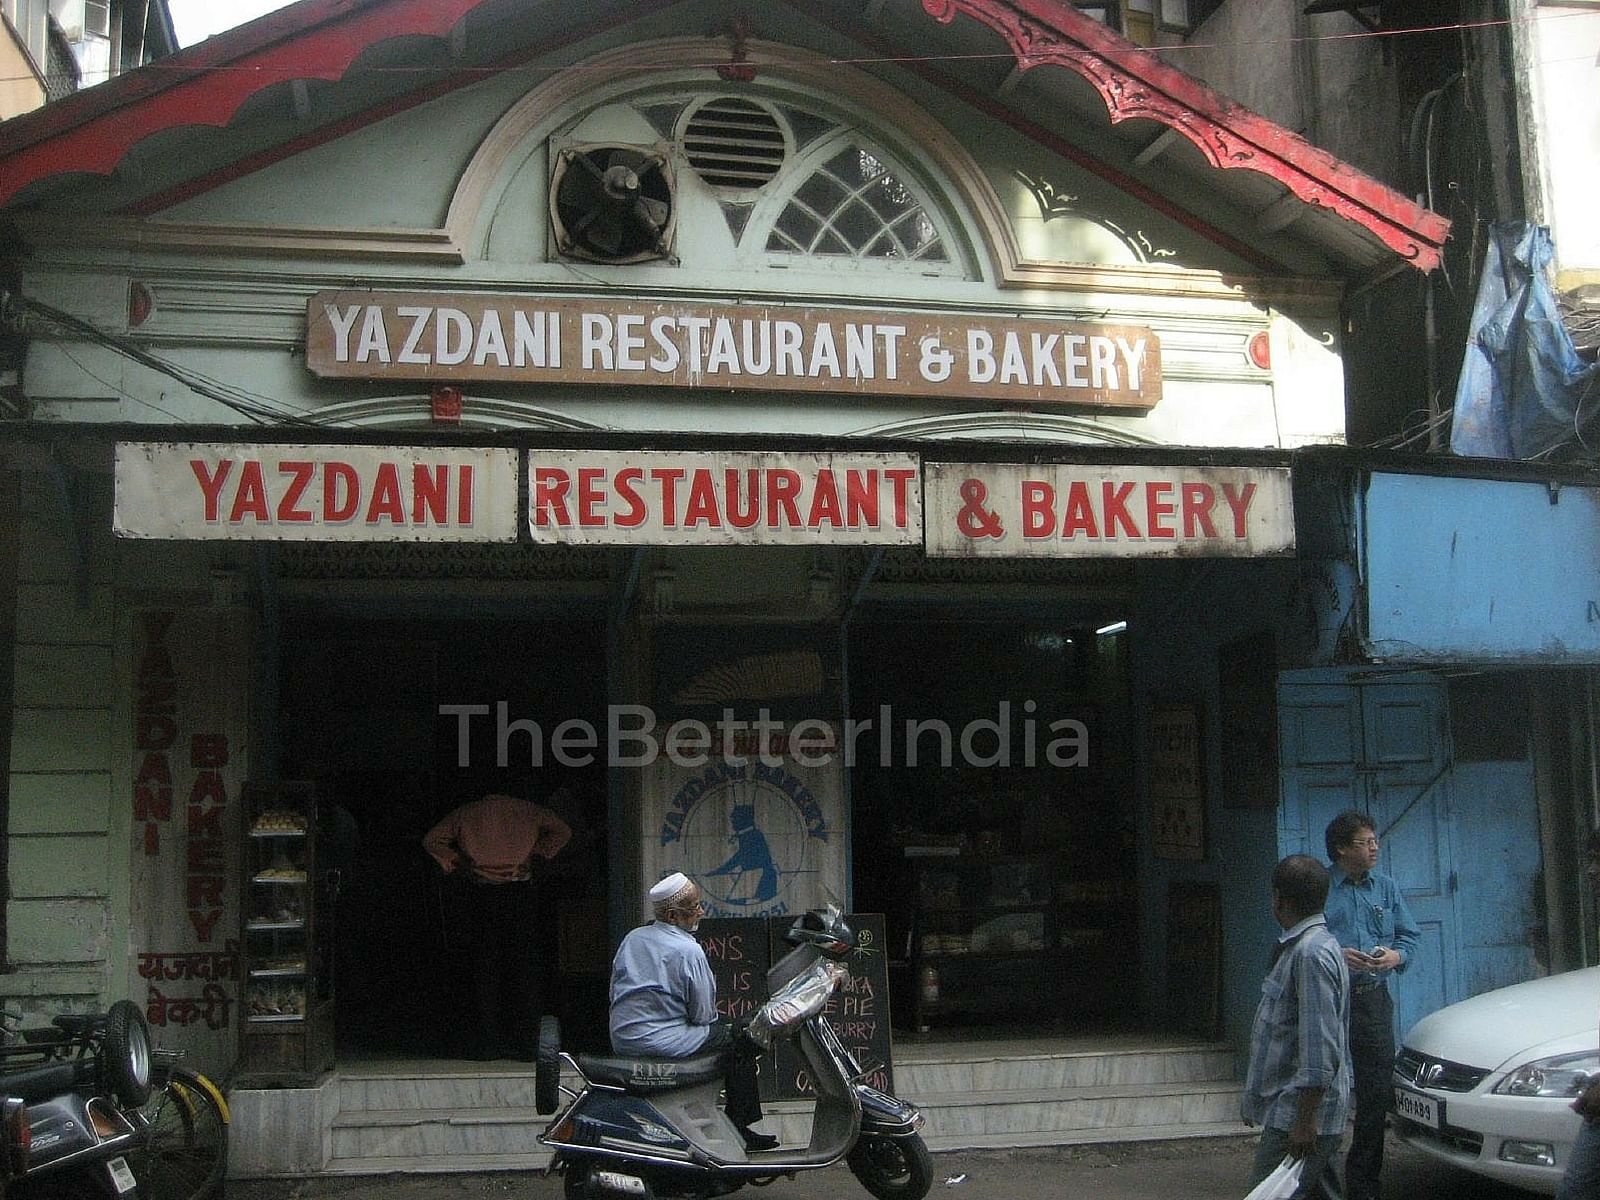 More than a hundred years old, Yazdani Bakery is a tall-ceilinged, sweet-smelling, benign Irani bakery that has stood the test of time.